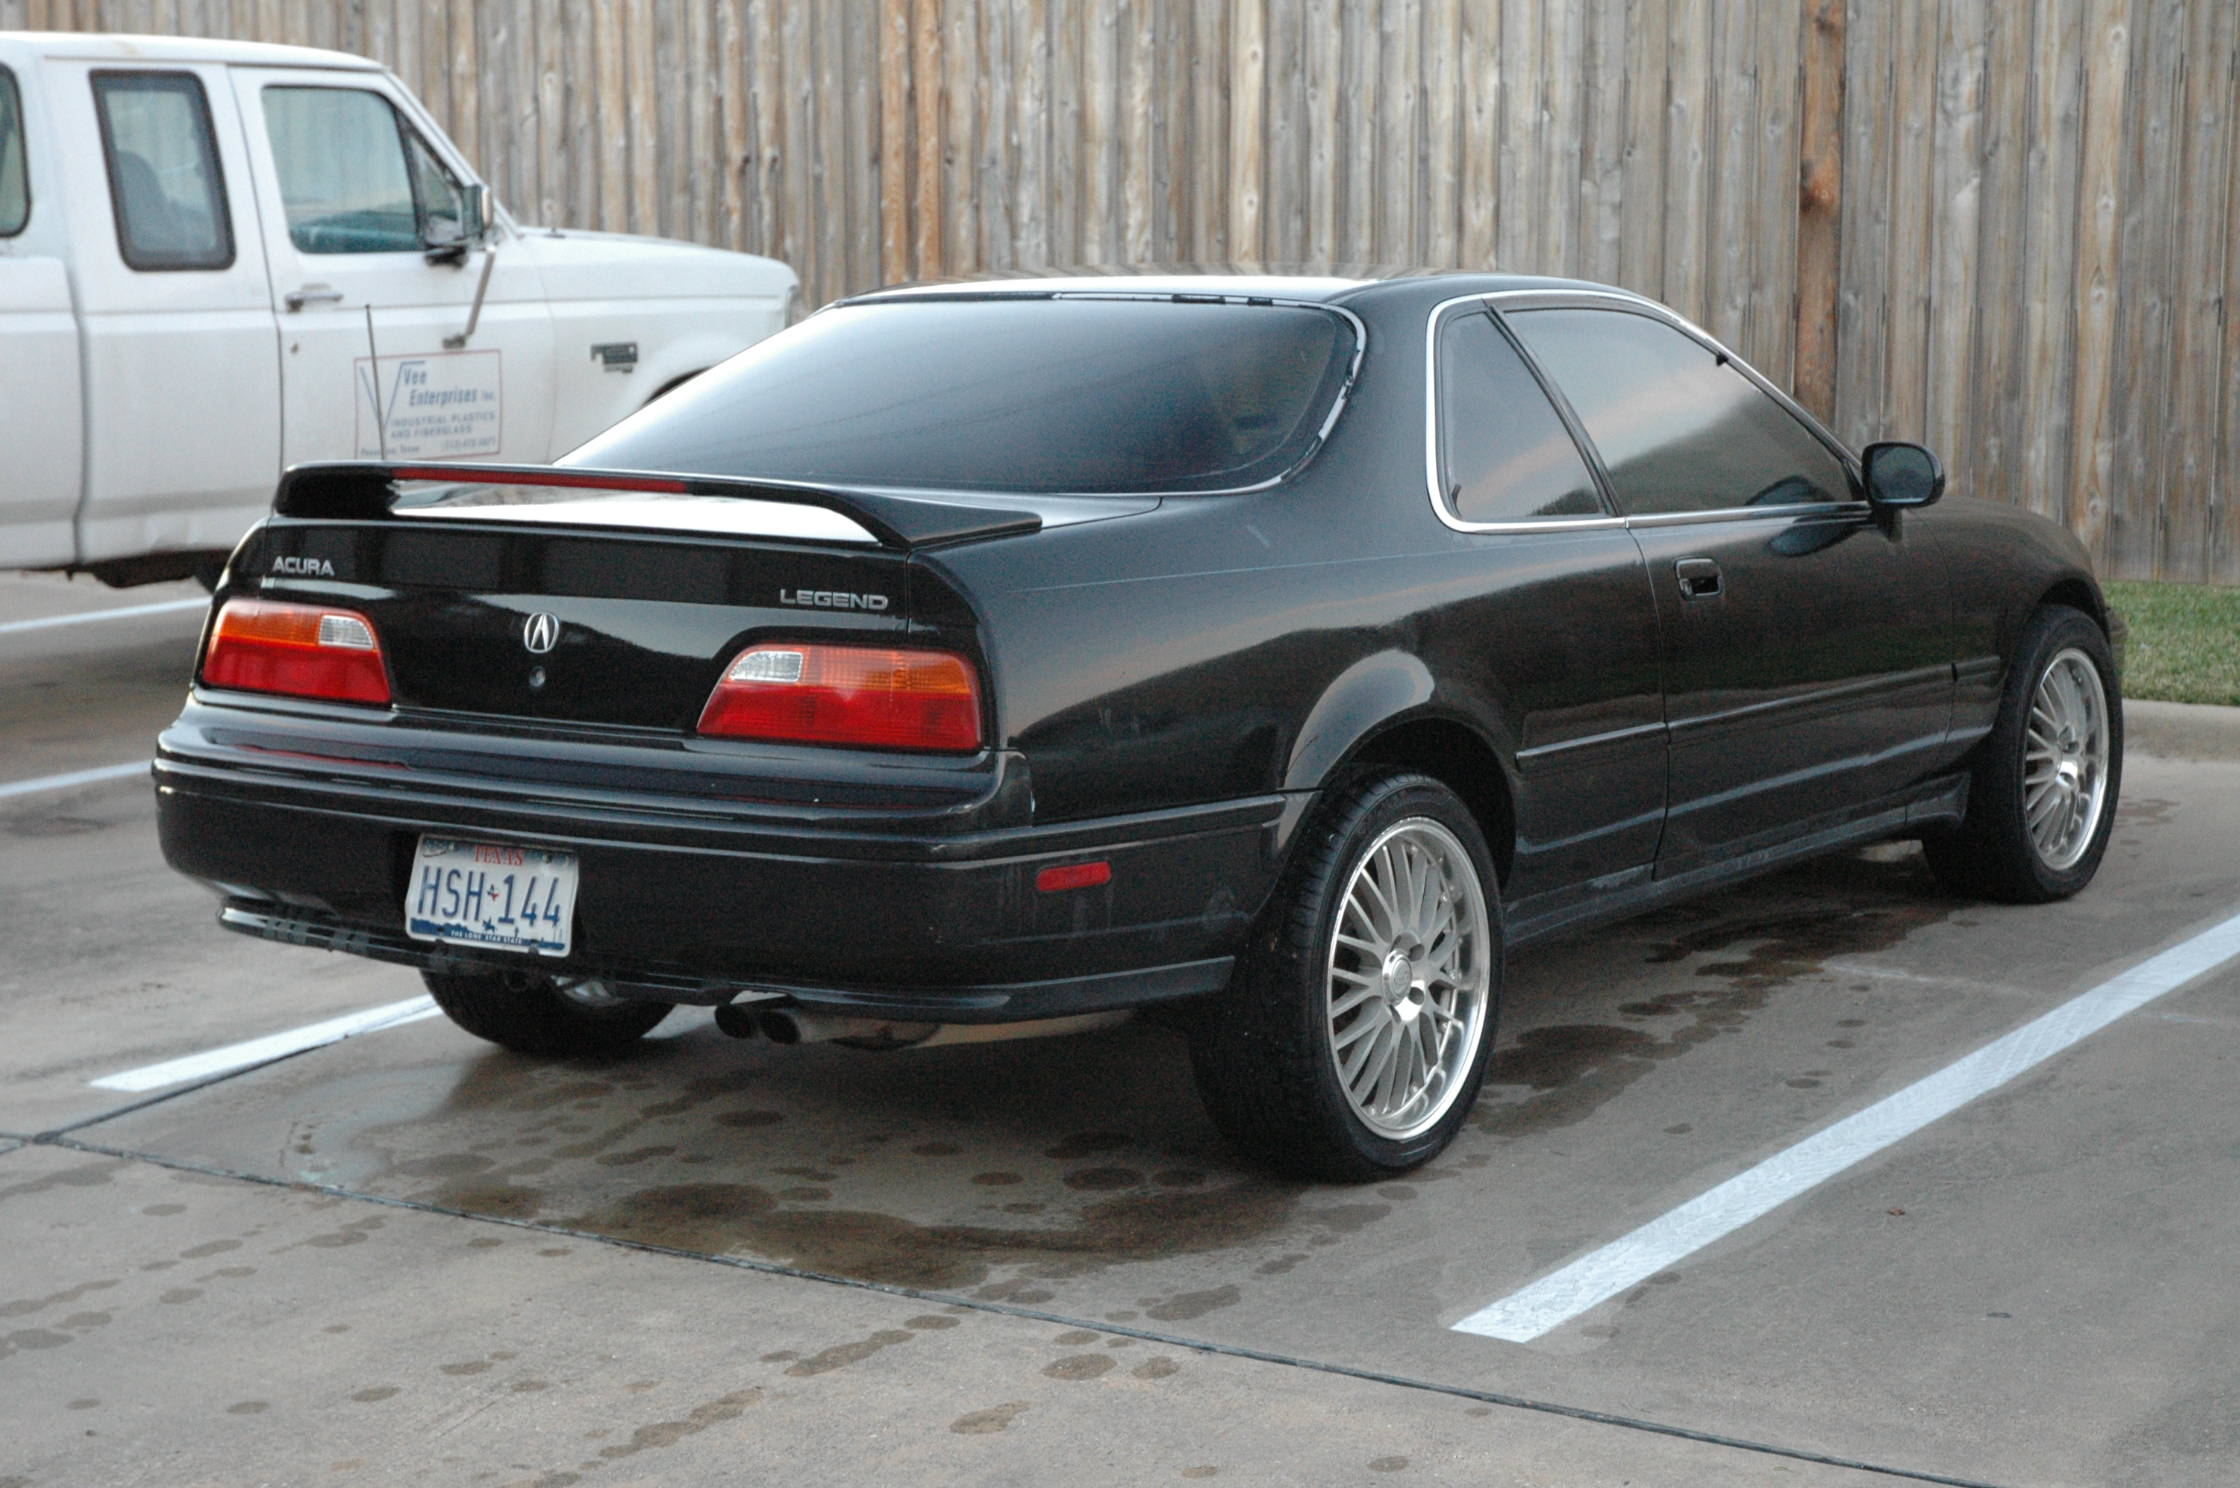 Acura Legend 1991 coupe for sale Wallpapers Desktop Download